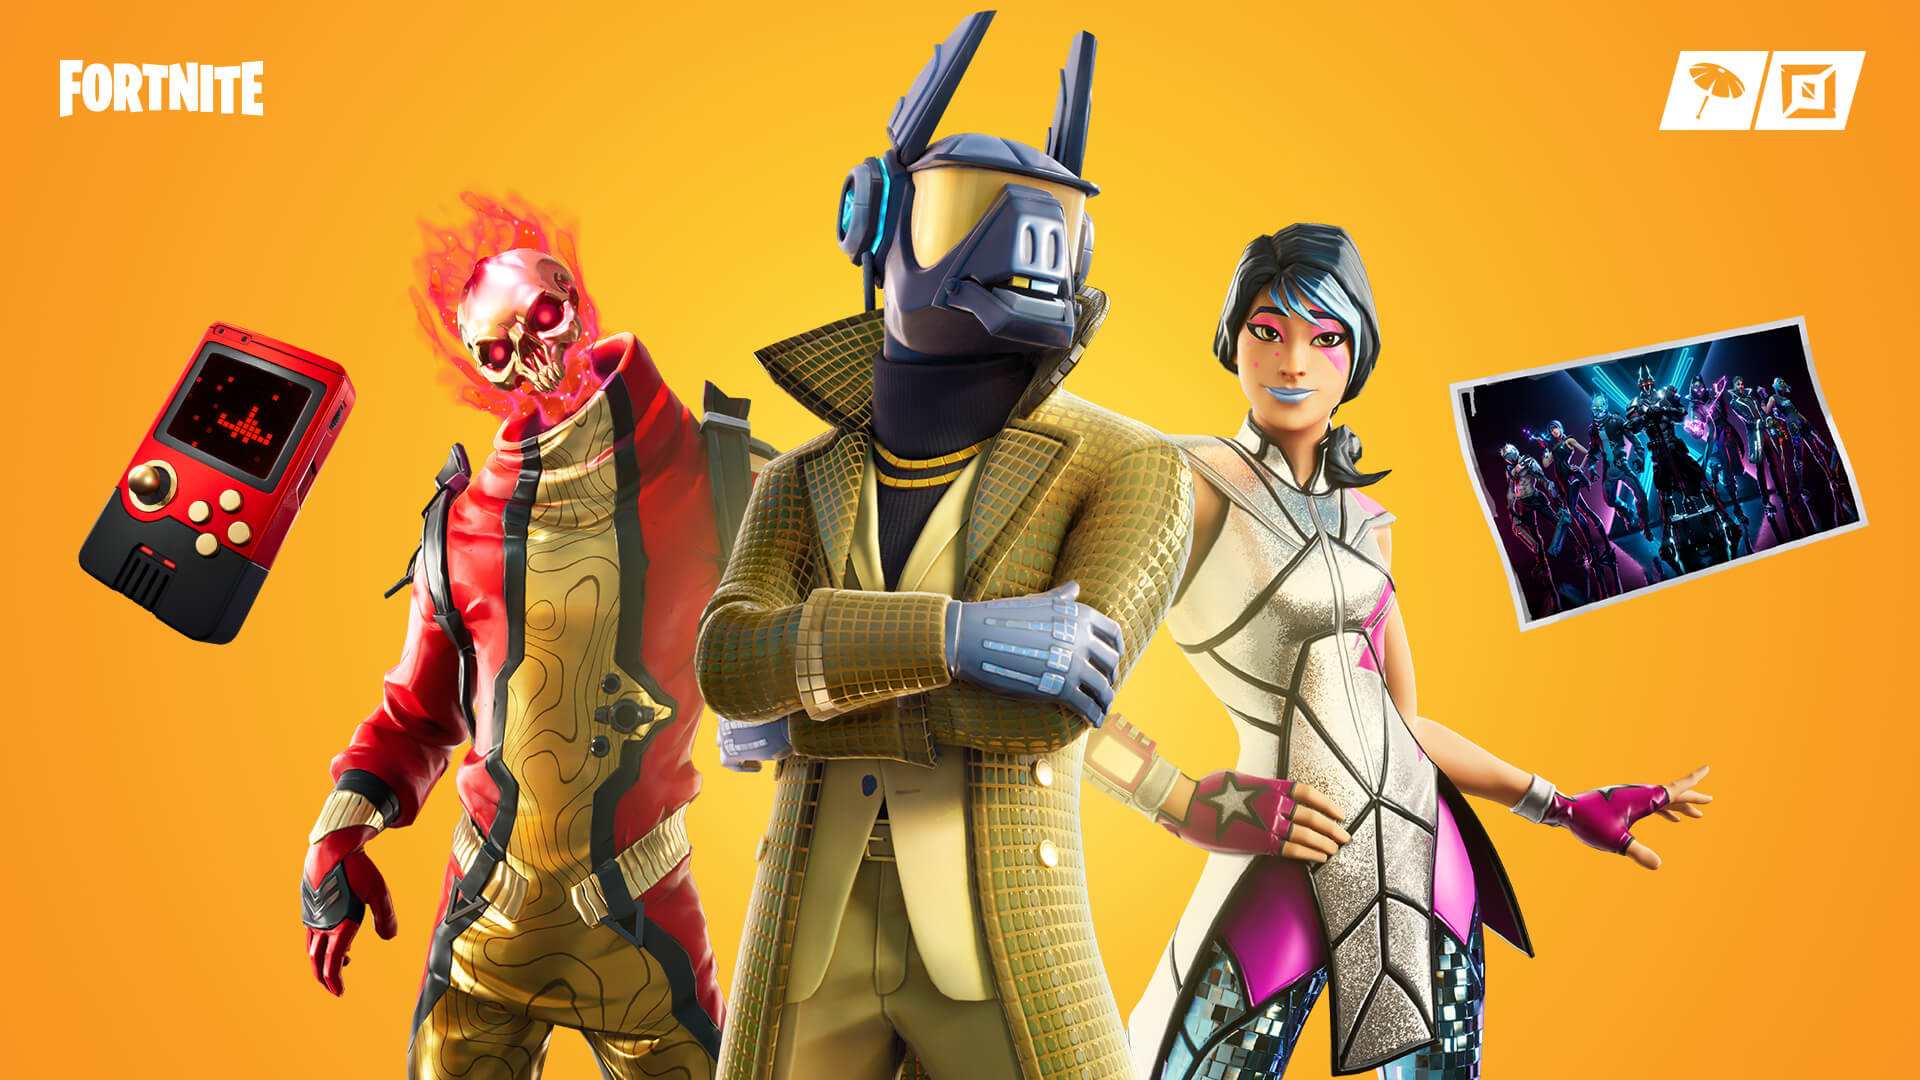 , Fortnite V10.40.1 Patch Notes detail Out of Time Overtime rewards